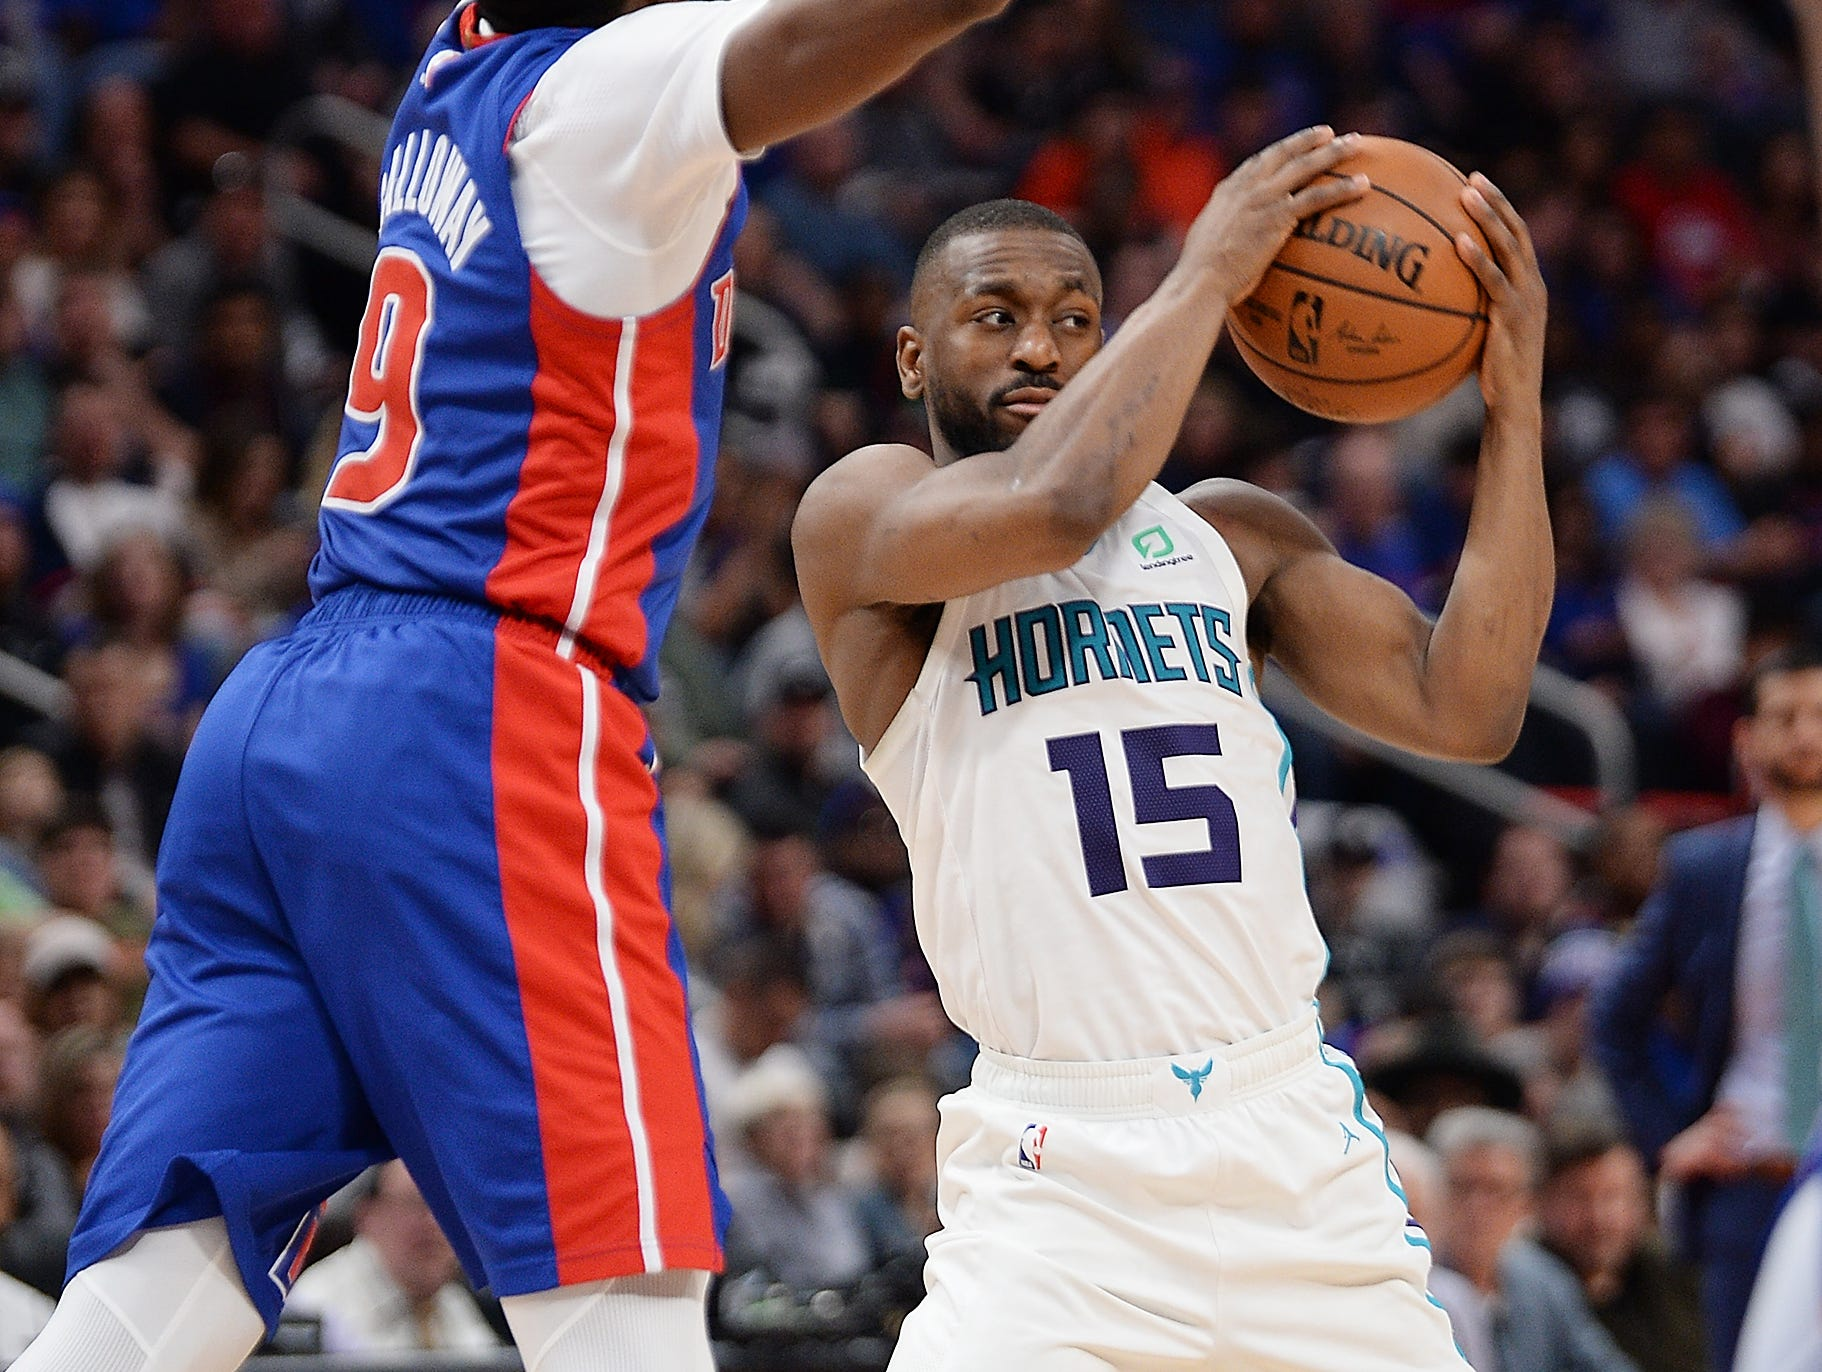 Hornets' Kemba Walker looks for room around Pistons' Langston Galloway in the fourth quarter. Walker had a game high 31 points and 7 assists.